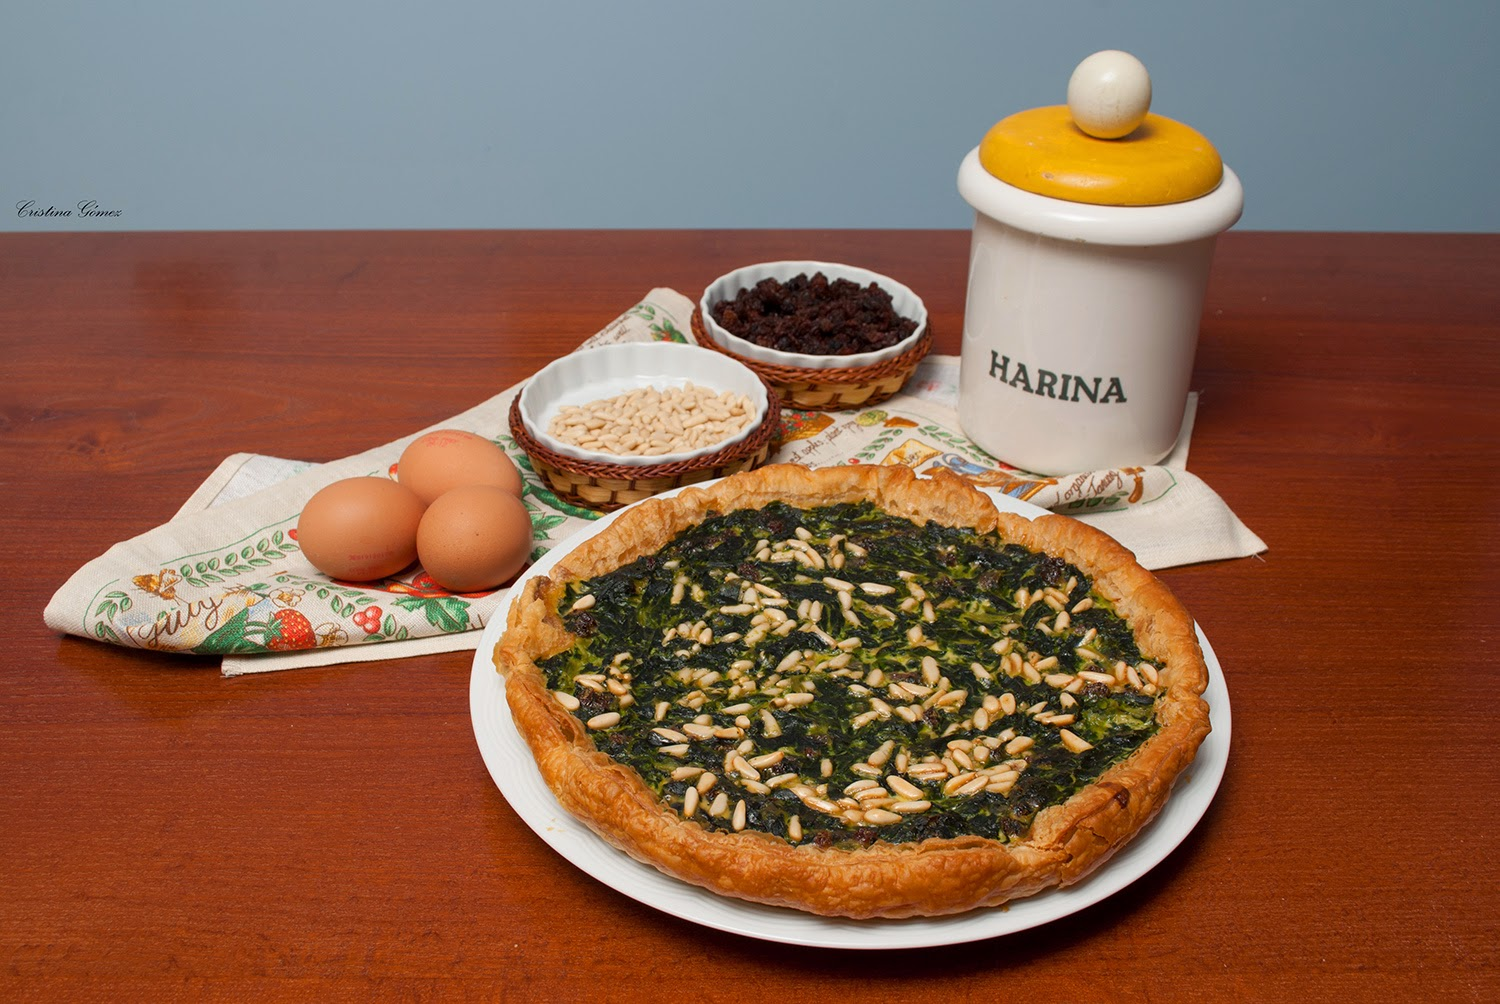 Mondays We Cook: Spinach, Raisin, and Pine Nut Quiche